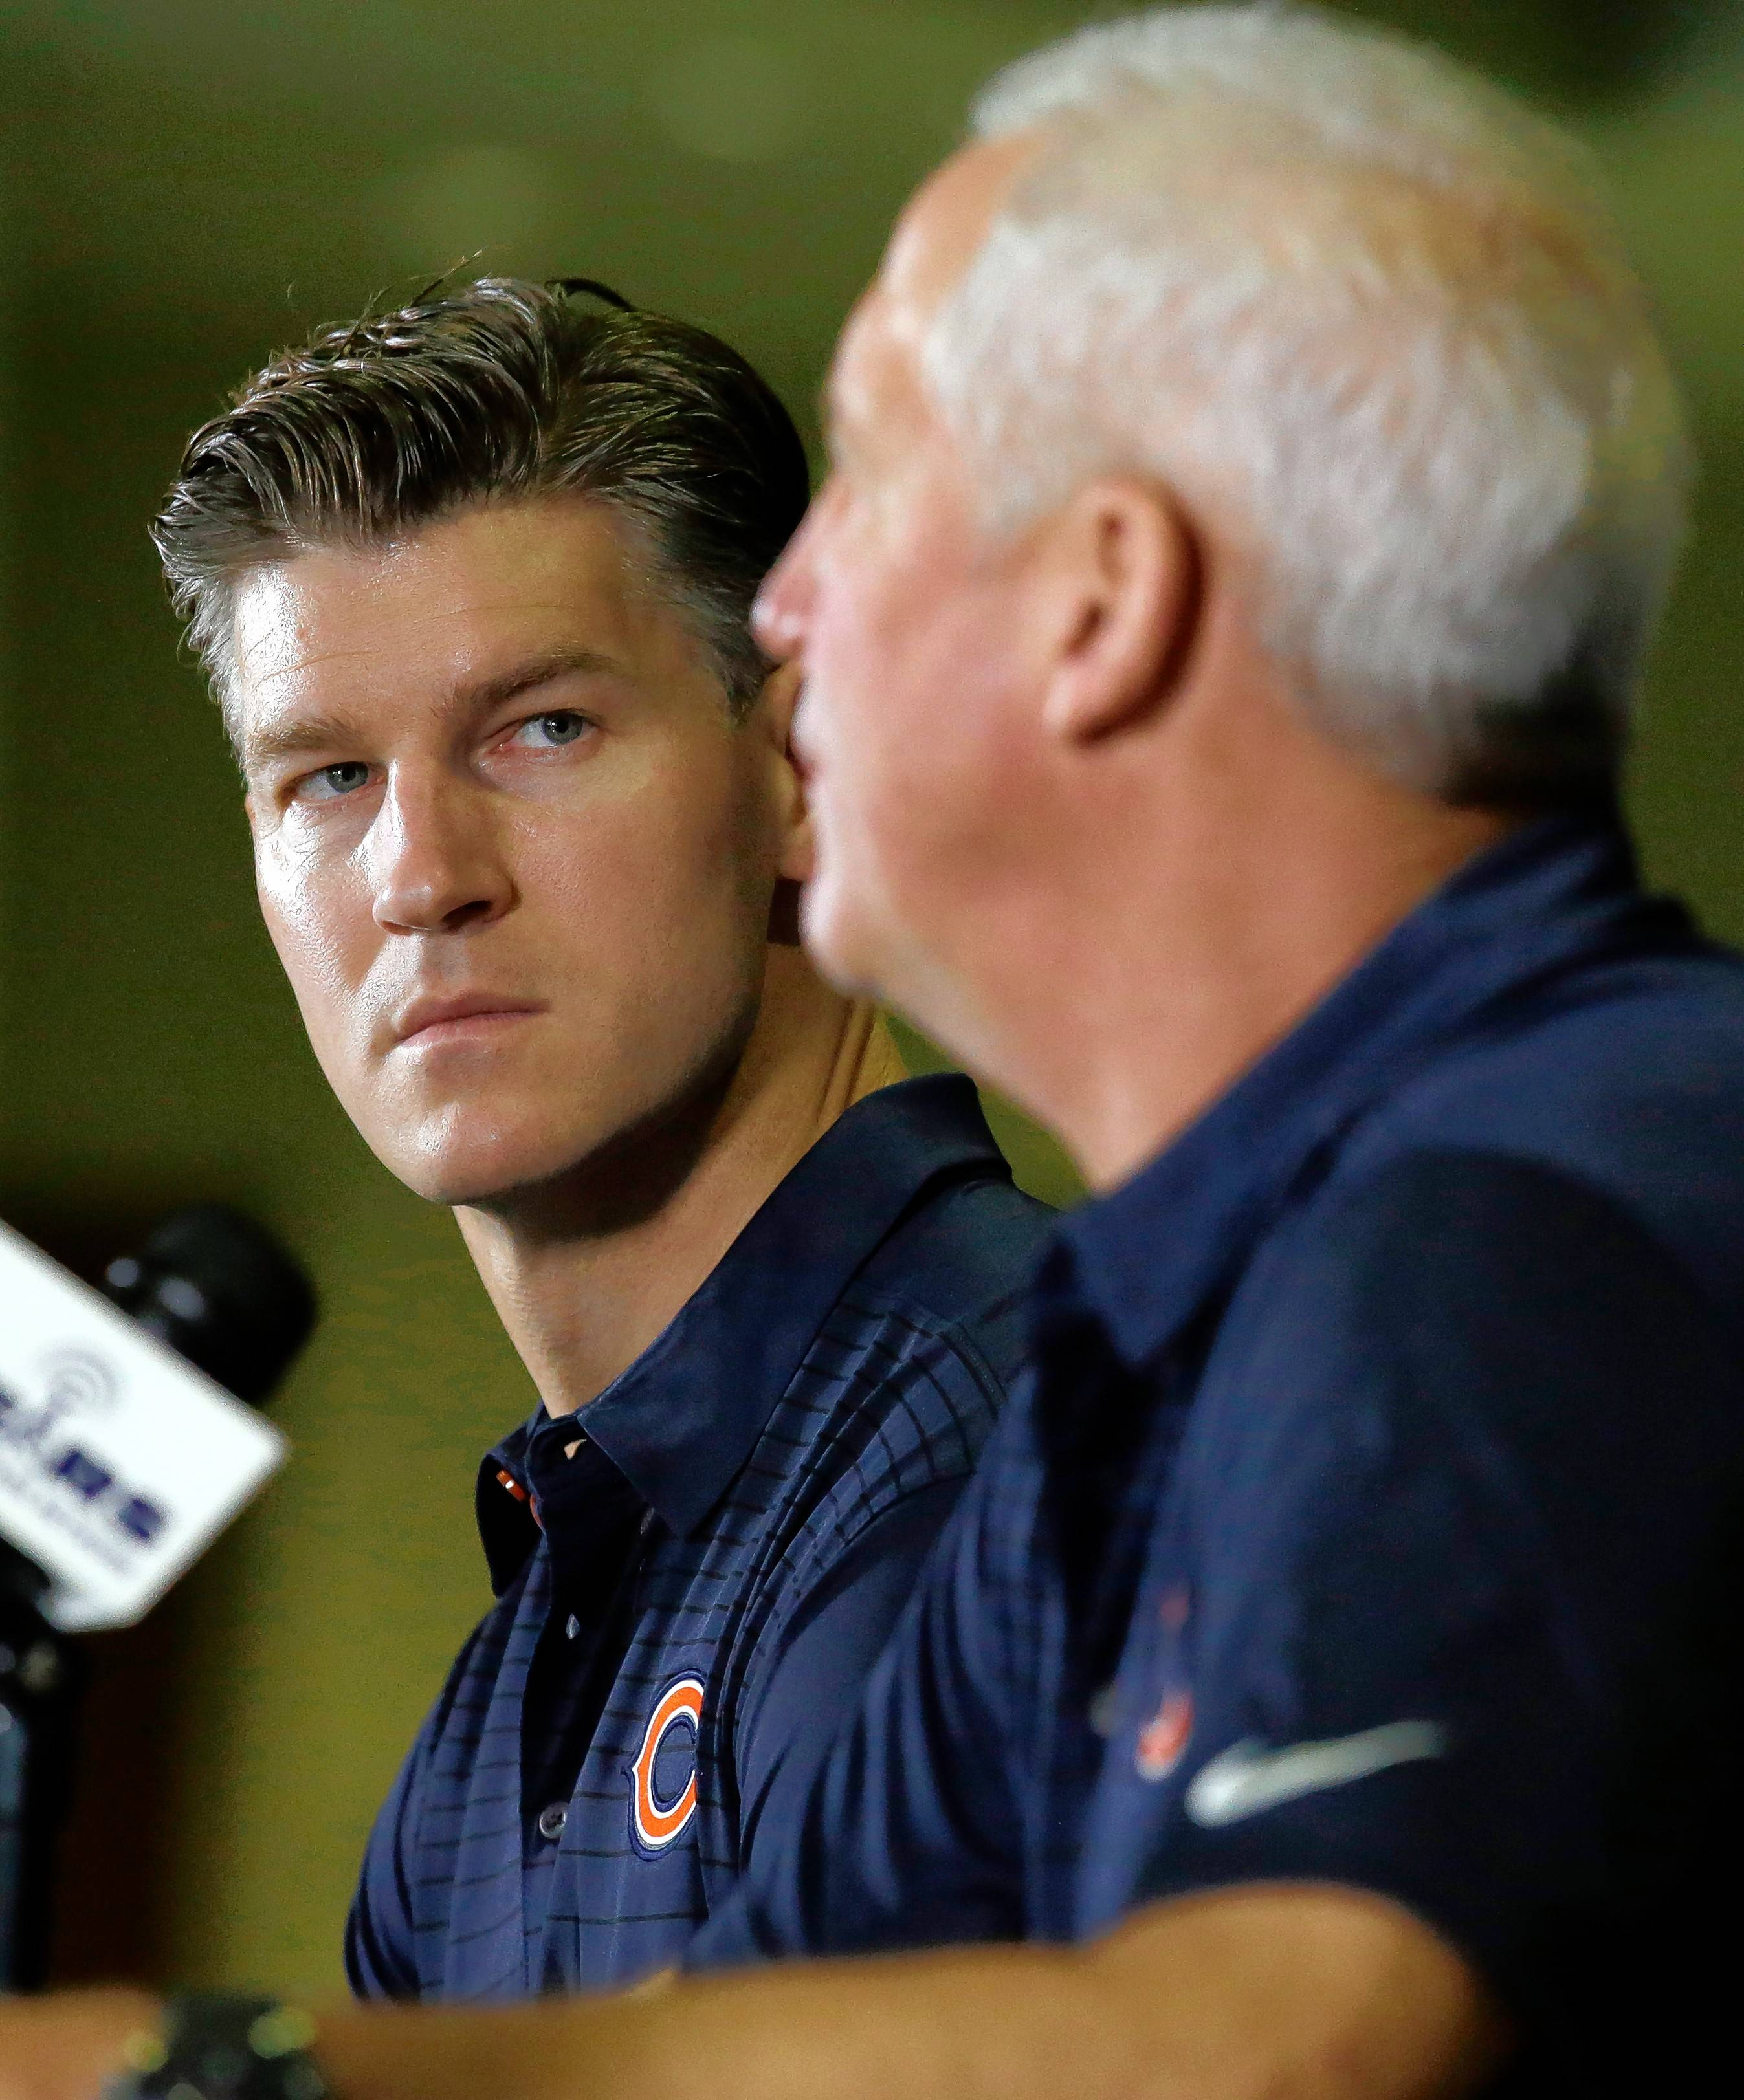 Chicago Bears general manager Ryan Pace, left, listens to head coach John Fox during an NFL football training camp in Bourbonnais, Ill., Wednesday, July 26, 2017. (AP Photo/Nam Y. Huh)